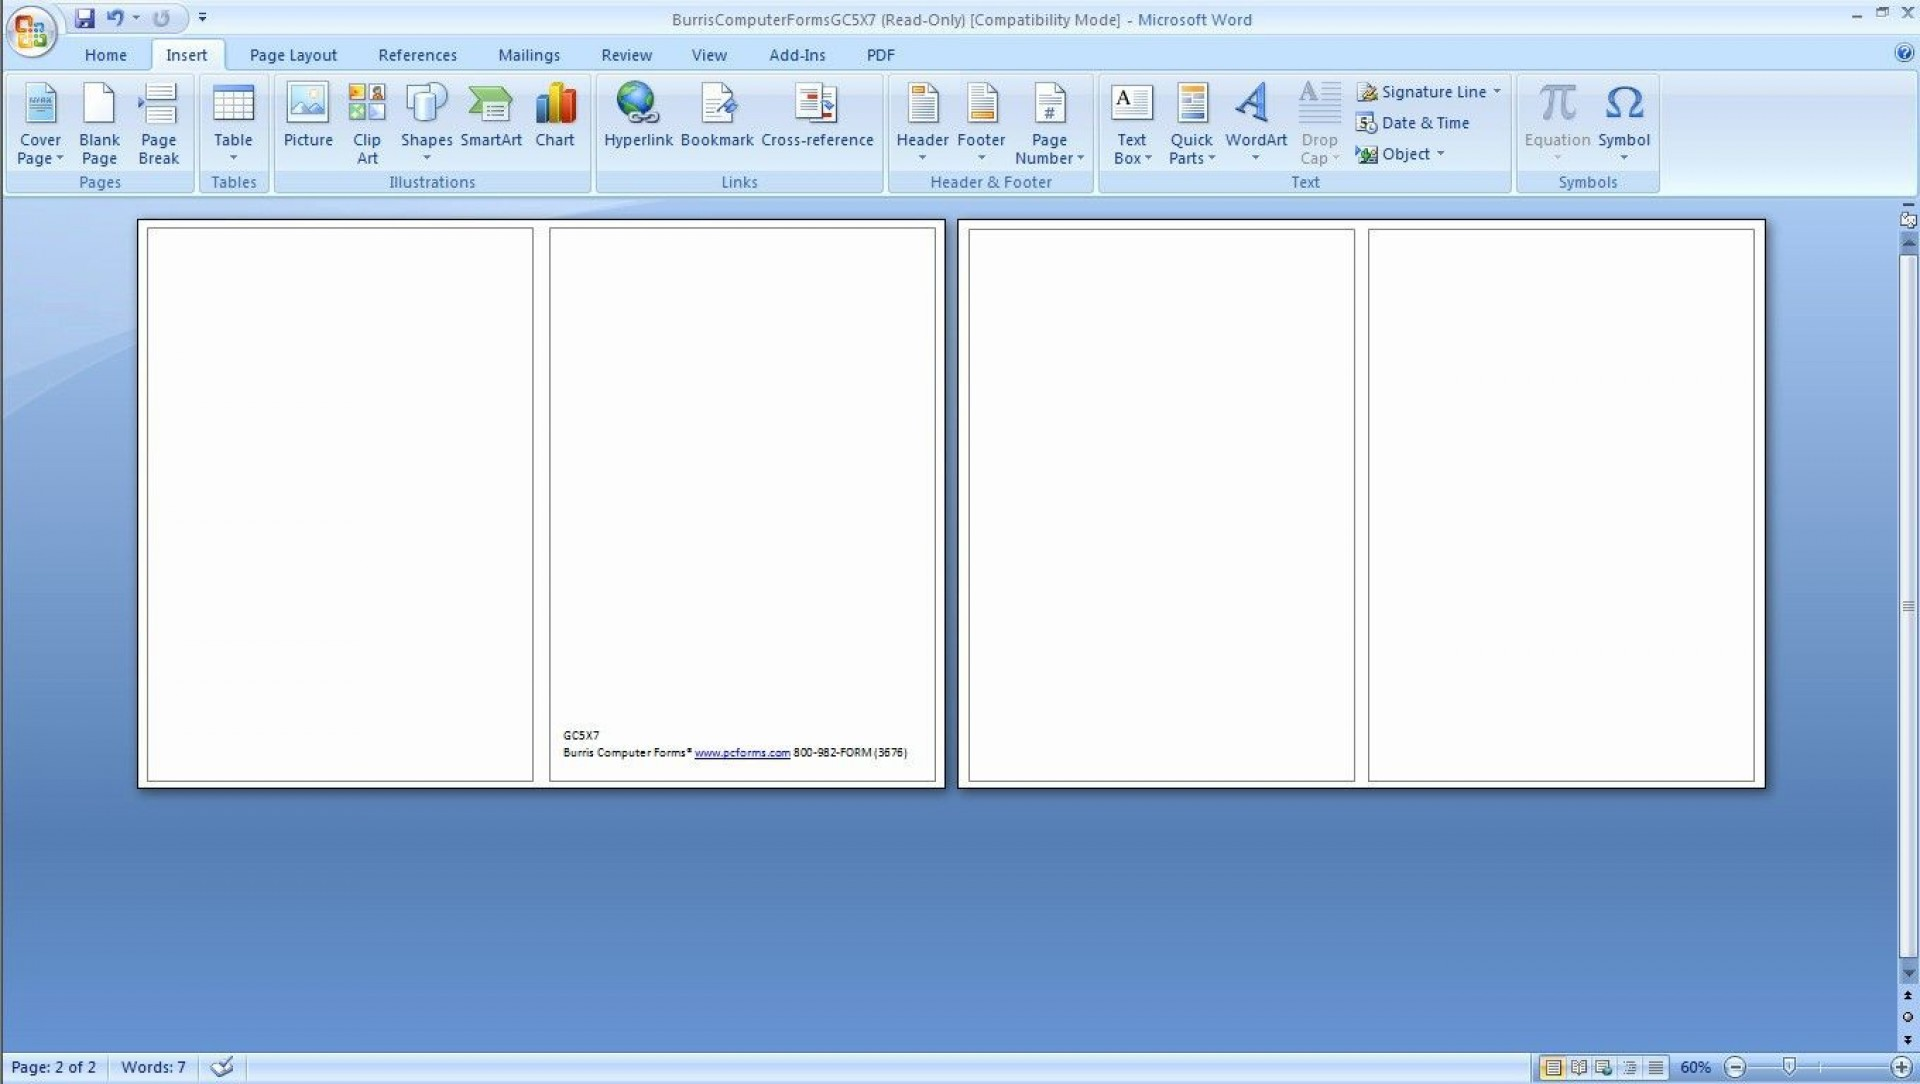 000 Simple Busines Card Template Microsoft Word 2010 High Resolution 1920